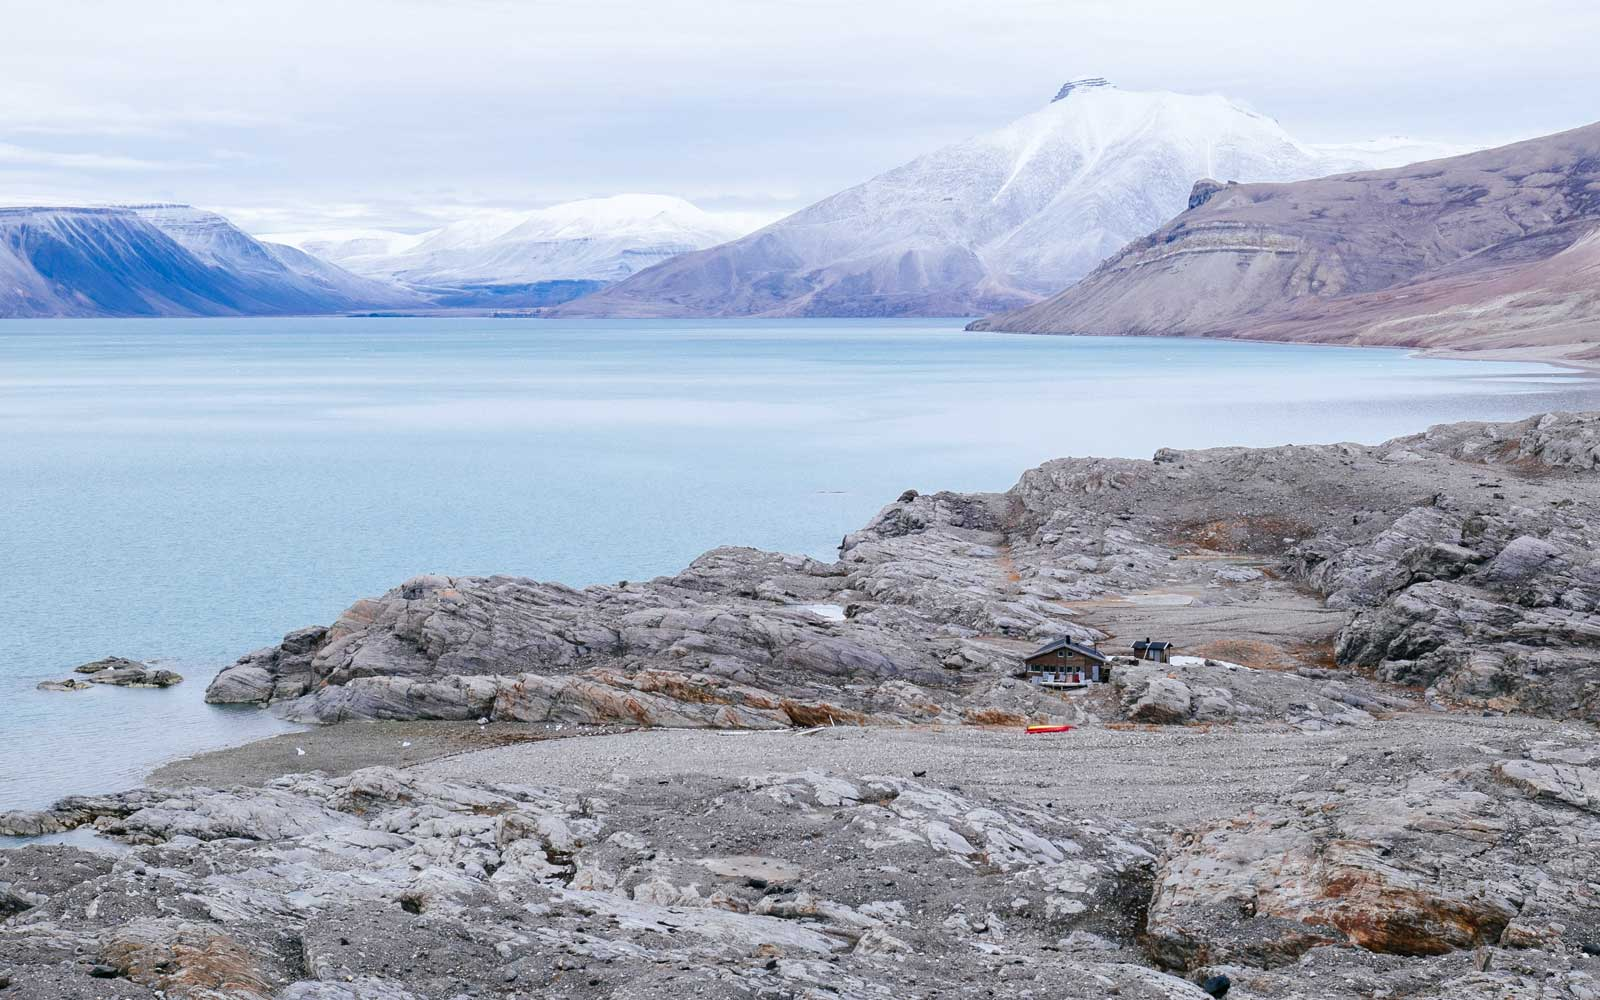 Basecamp Explorer adventure by Off the Map travel in Svalbard